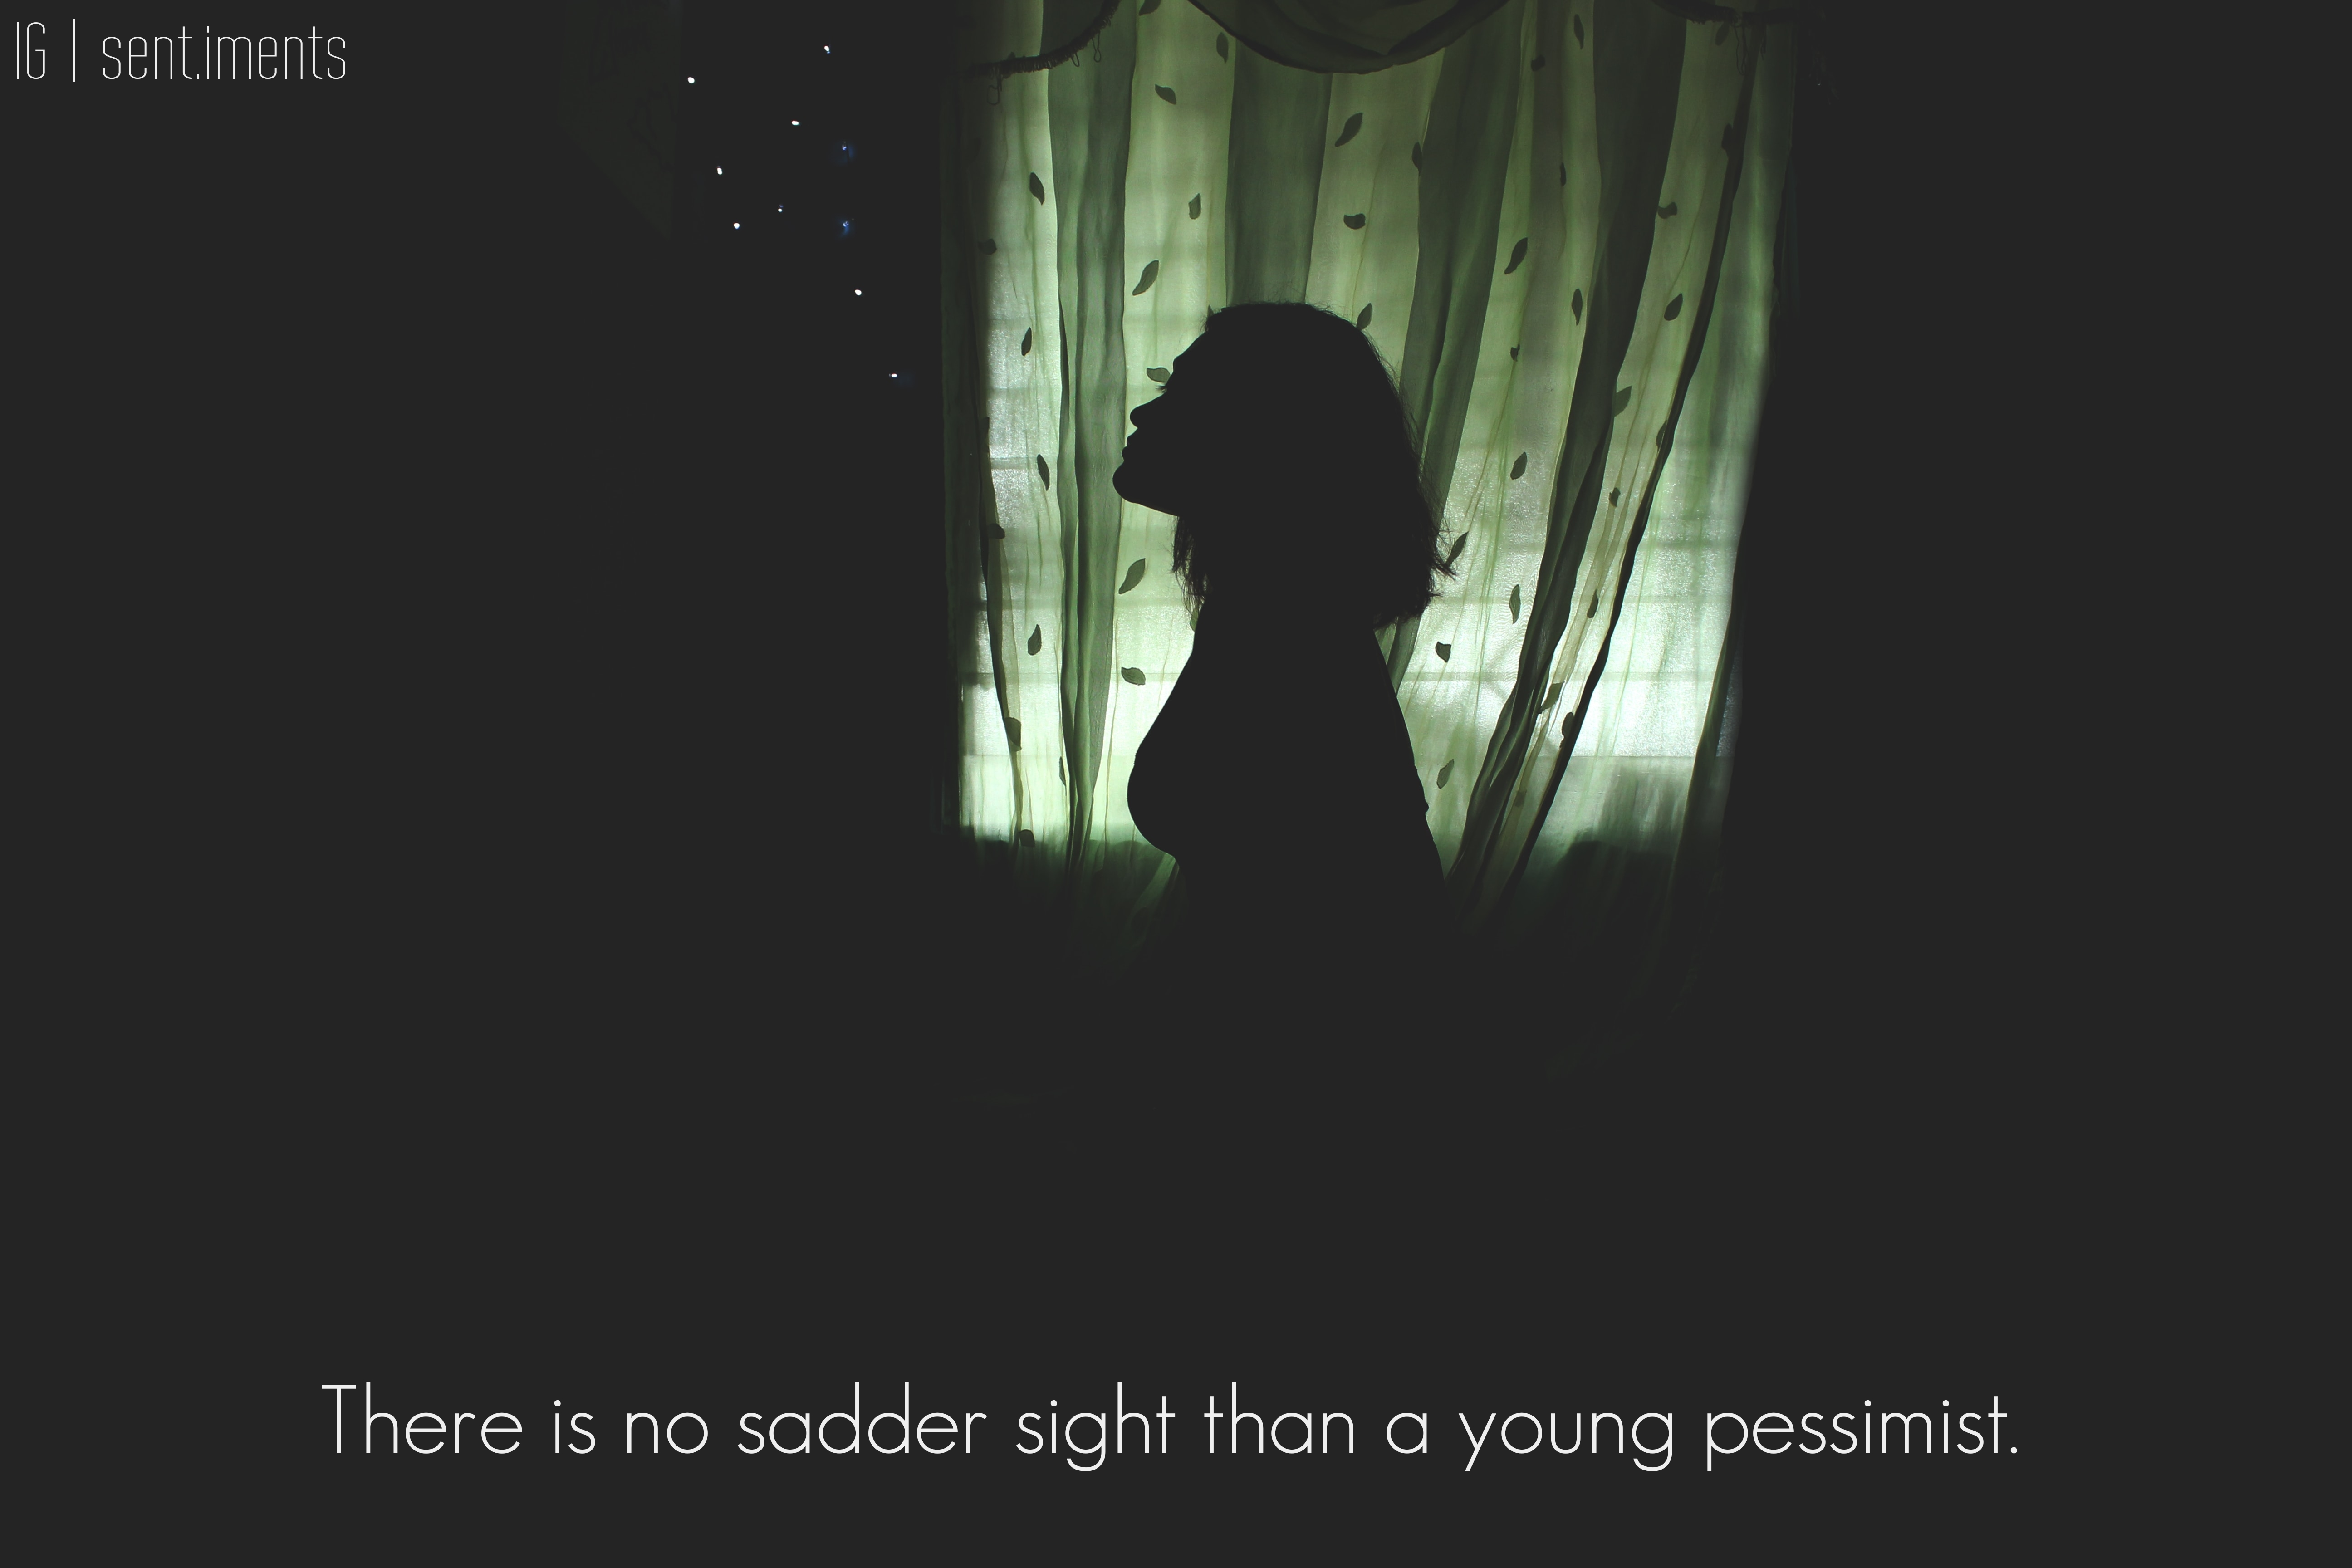 """There is no sadder sight than a young pessimist"" by Mark Twain [5184 X 3456]"